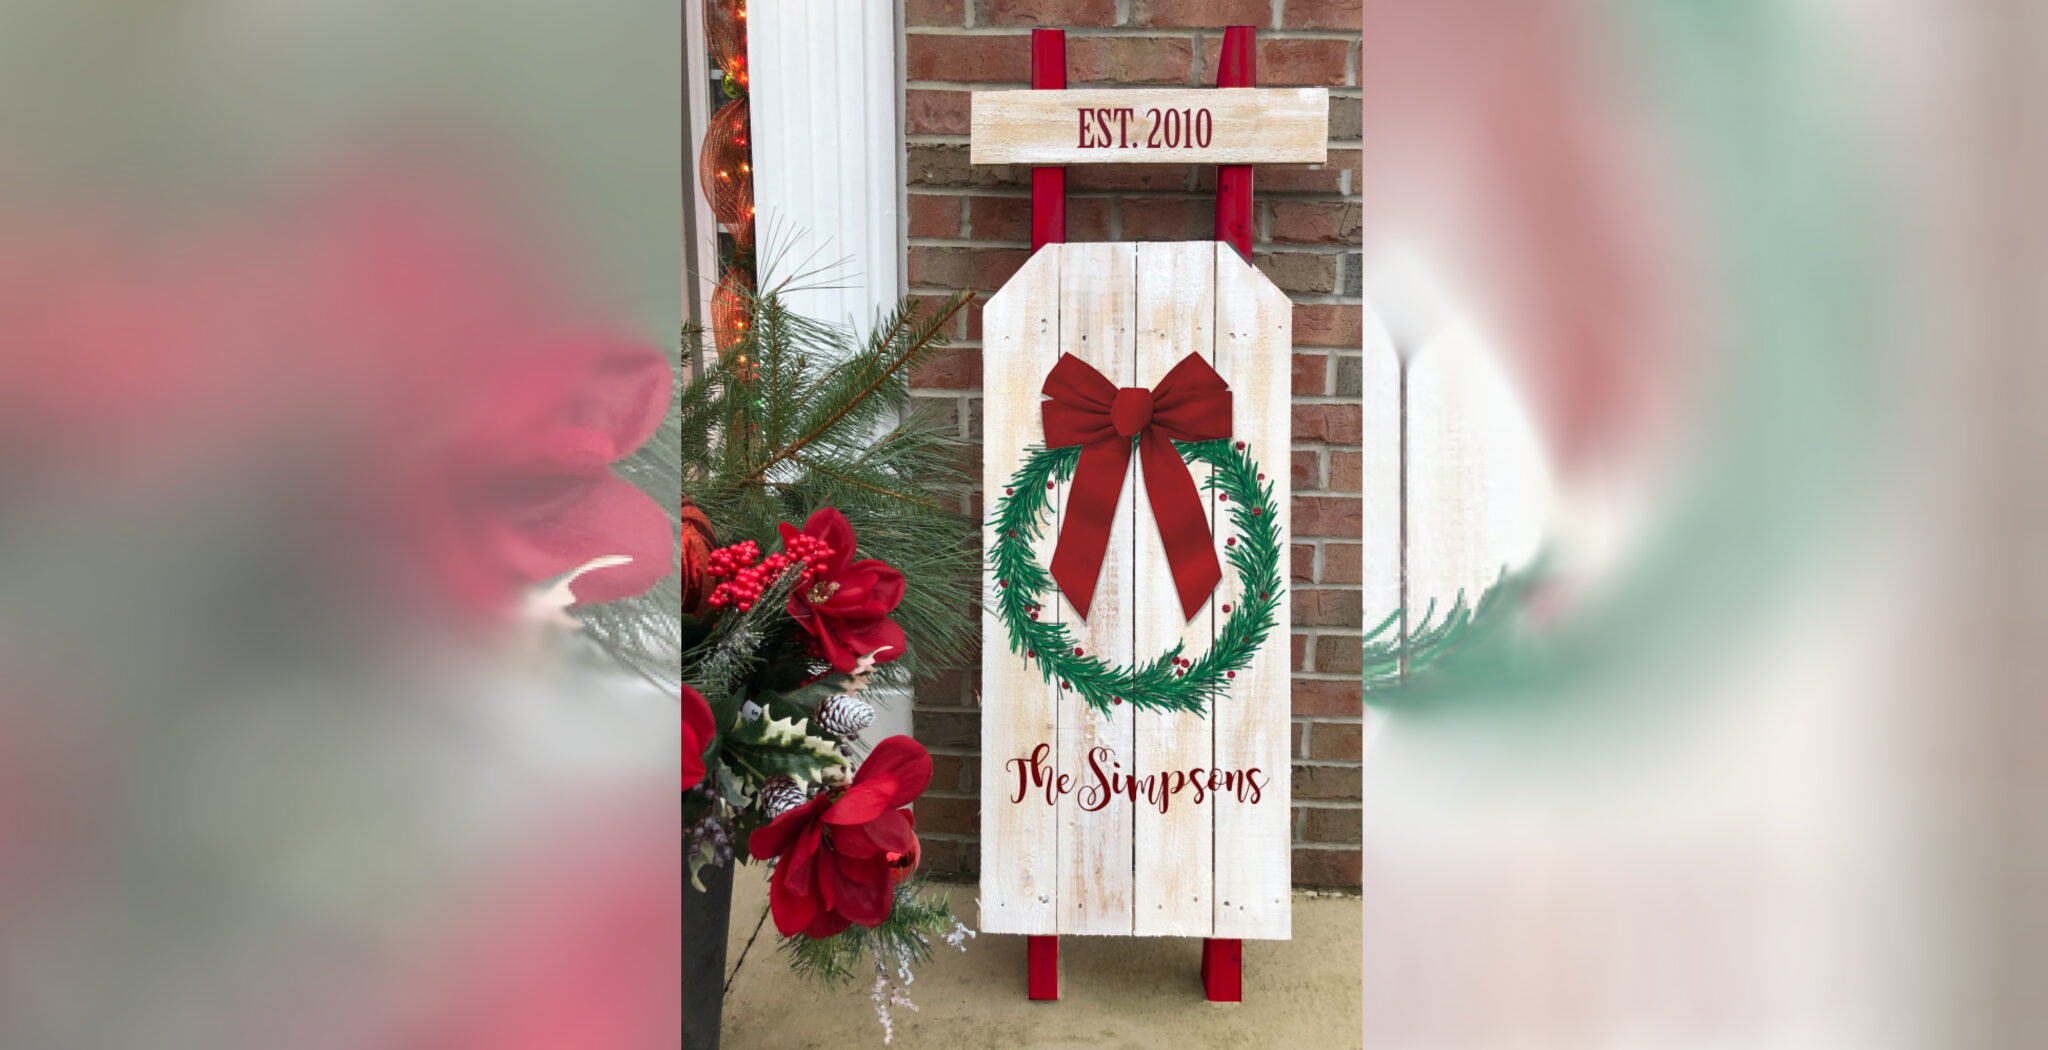 WOODEN SLED WITH WREATH - DEC 2 - SILVER RUN